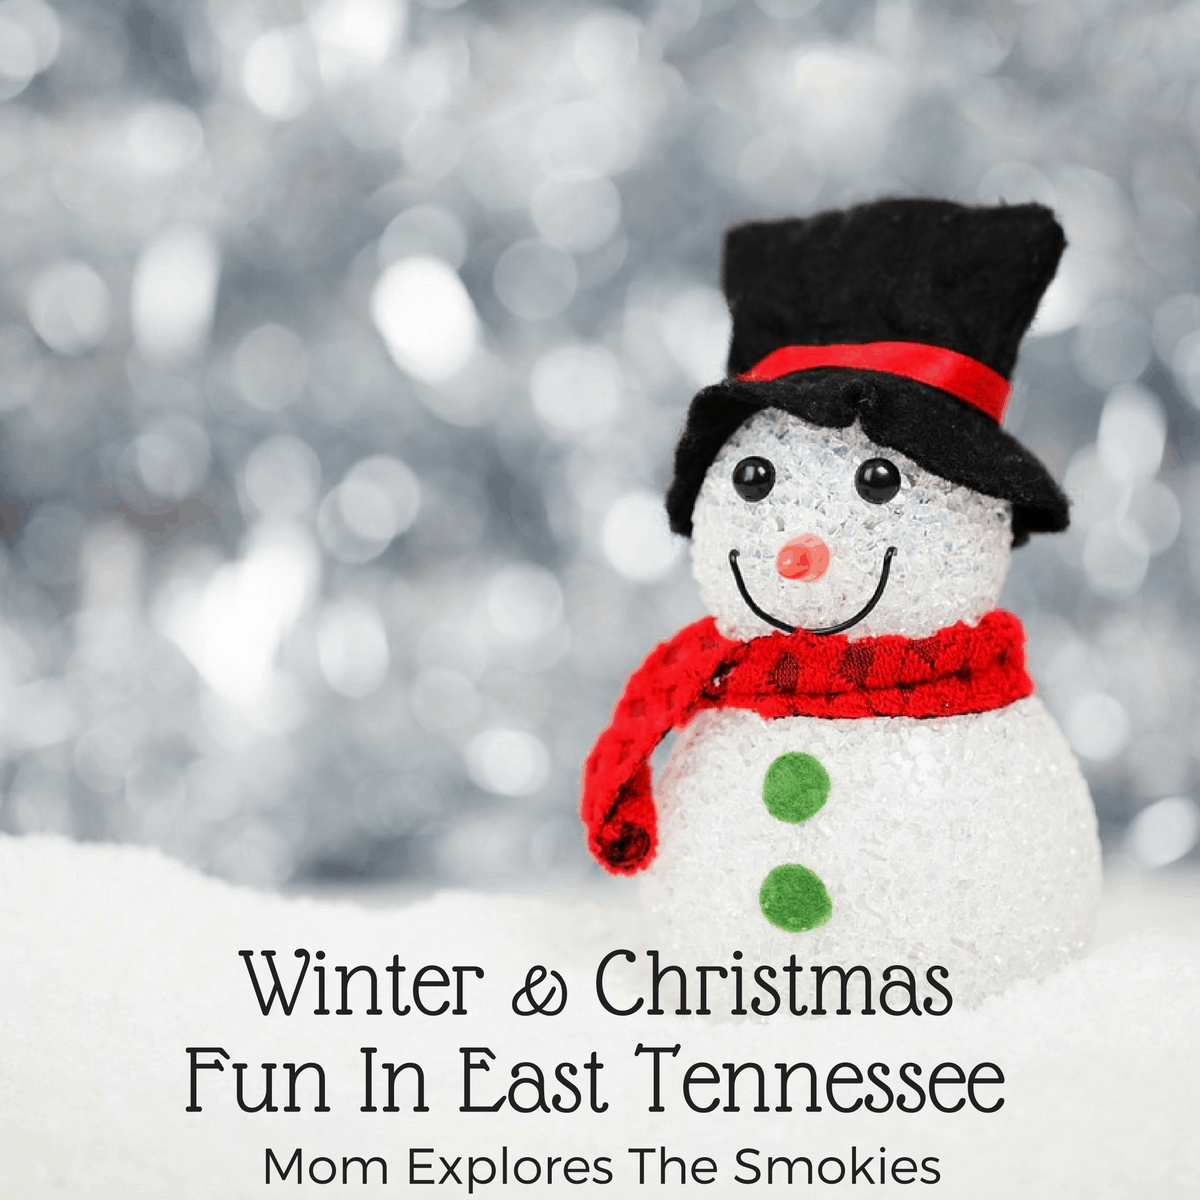 Winter & Christmas Activities in East Tennessee